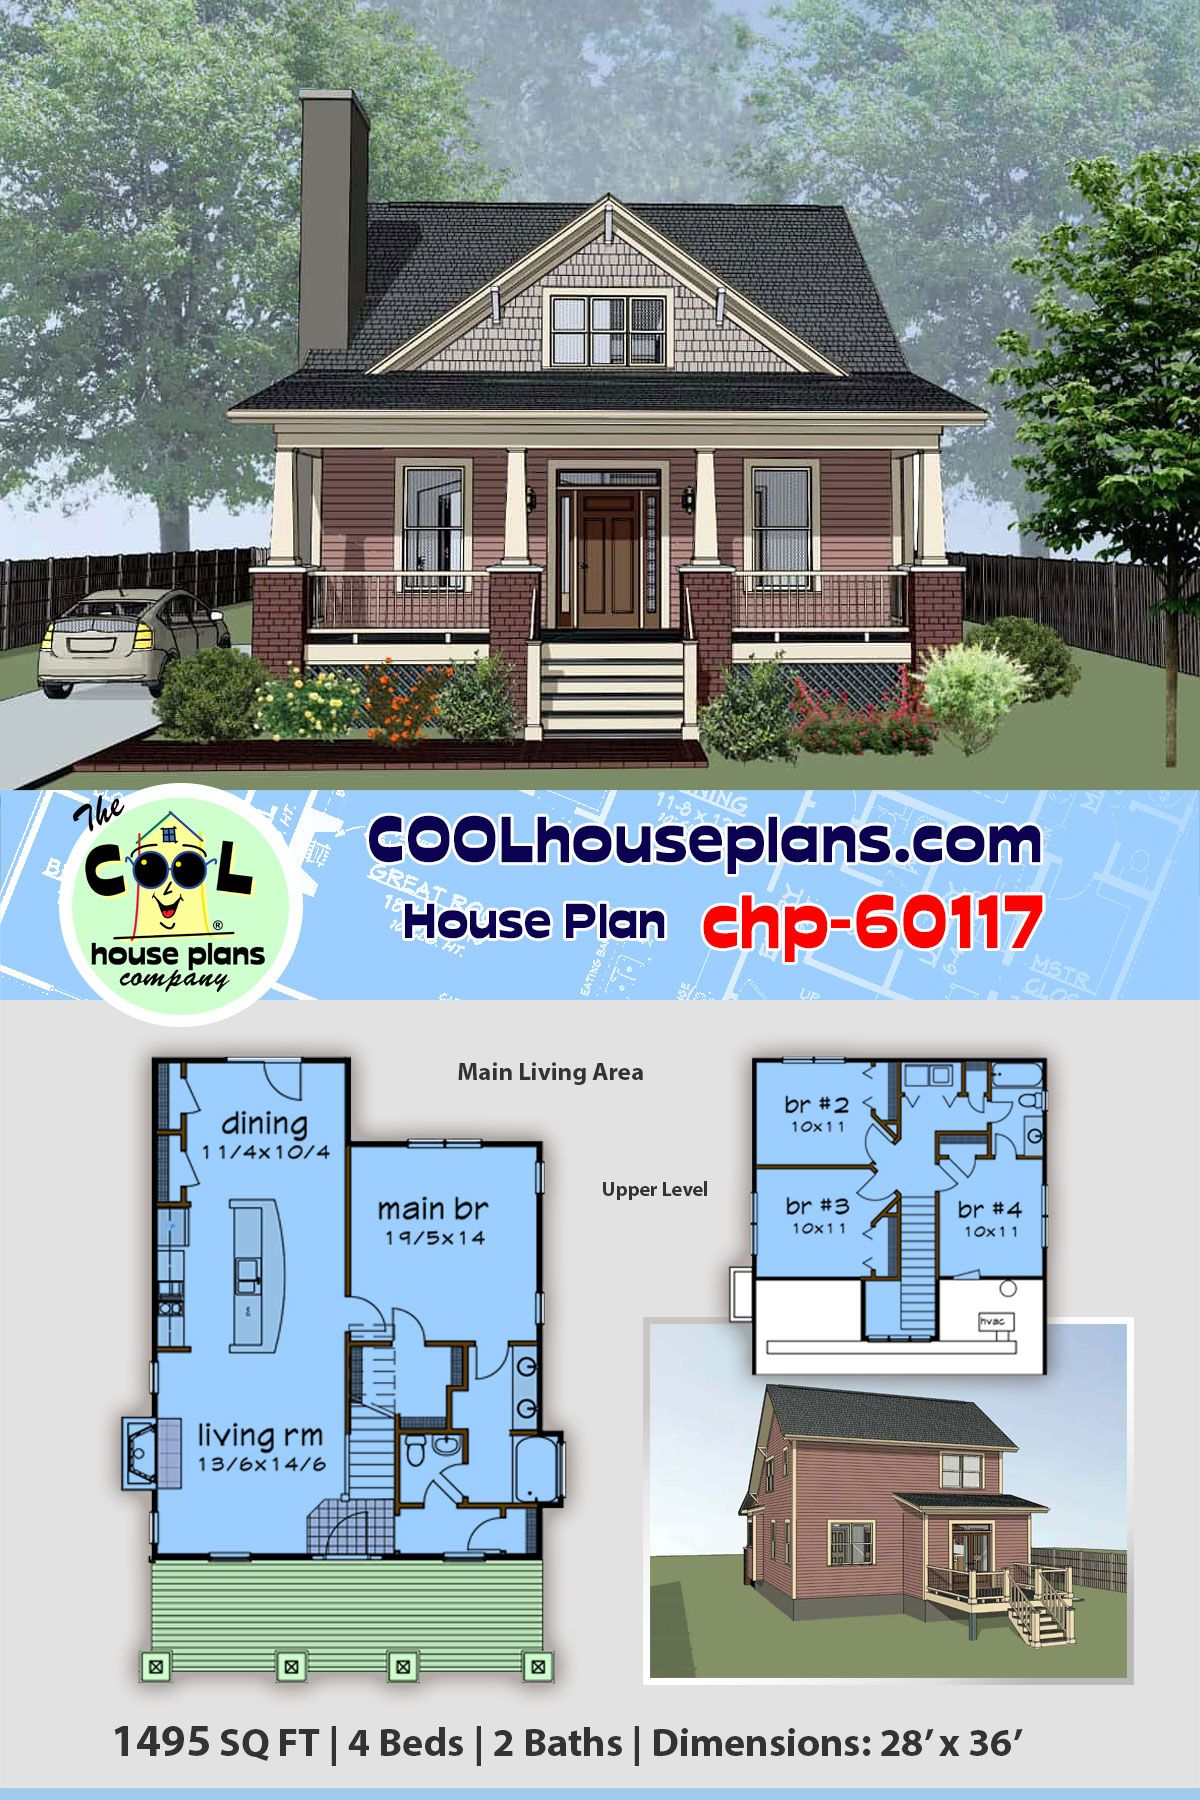 a traditional neighborhood style home plan offers a full